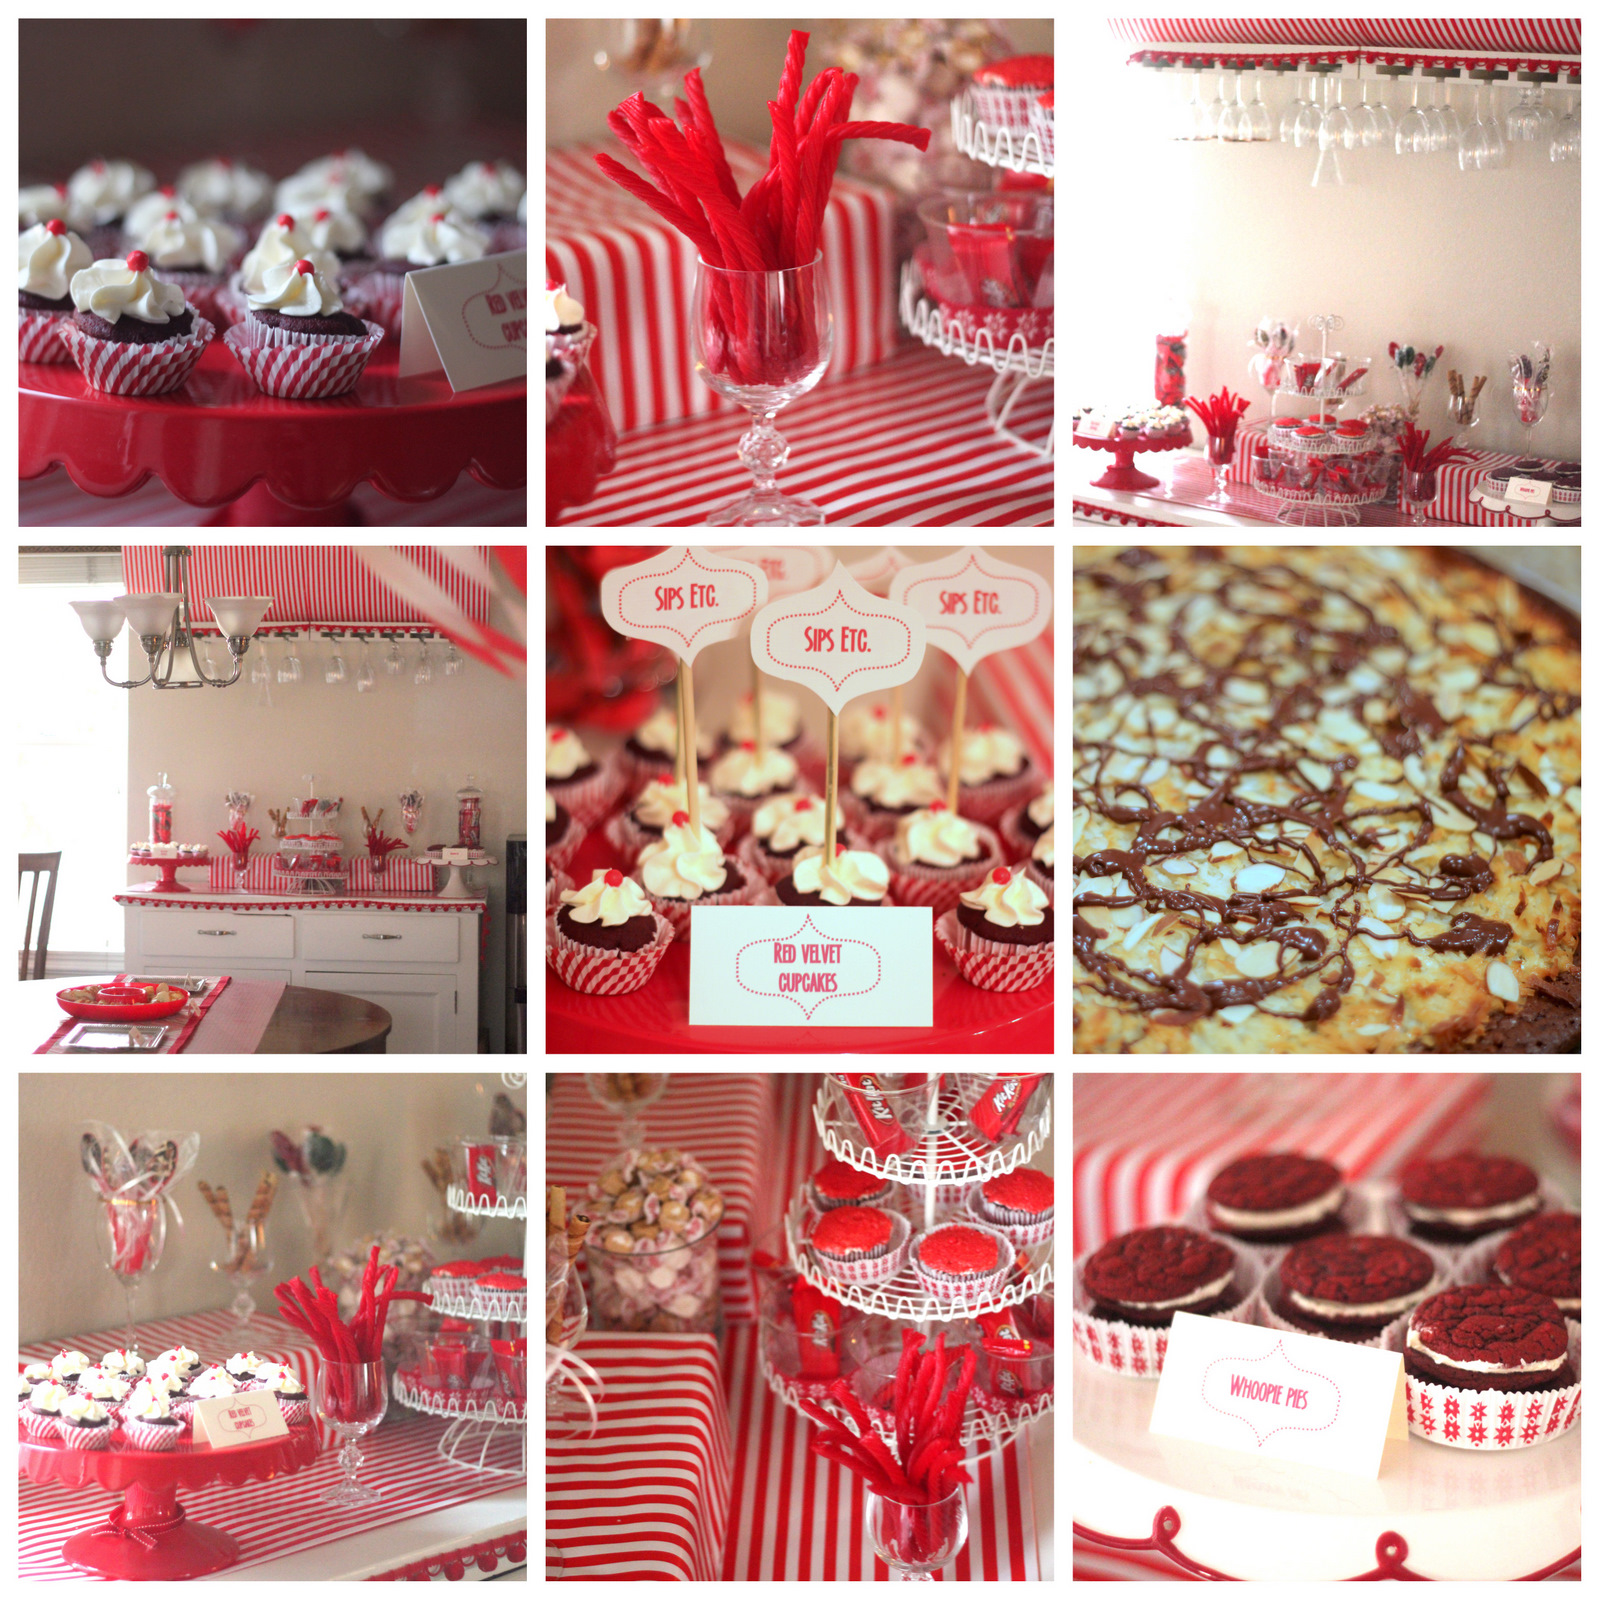 sips etc. red-and-white blog launch party!